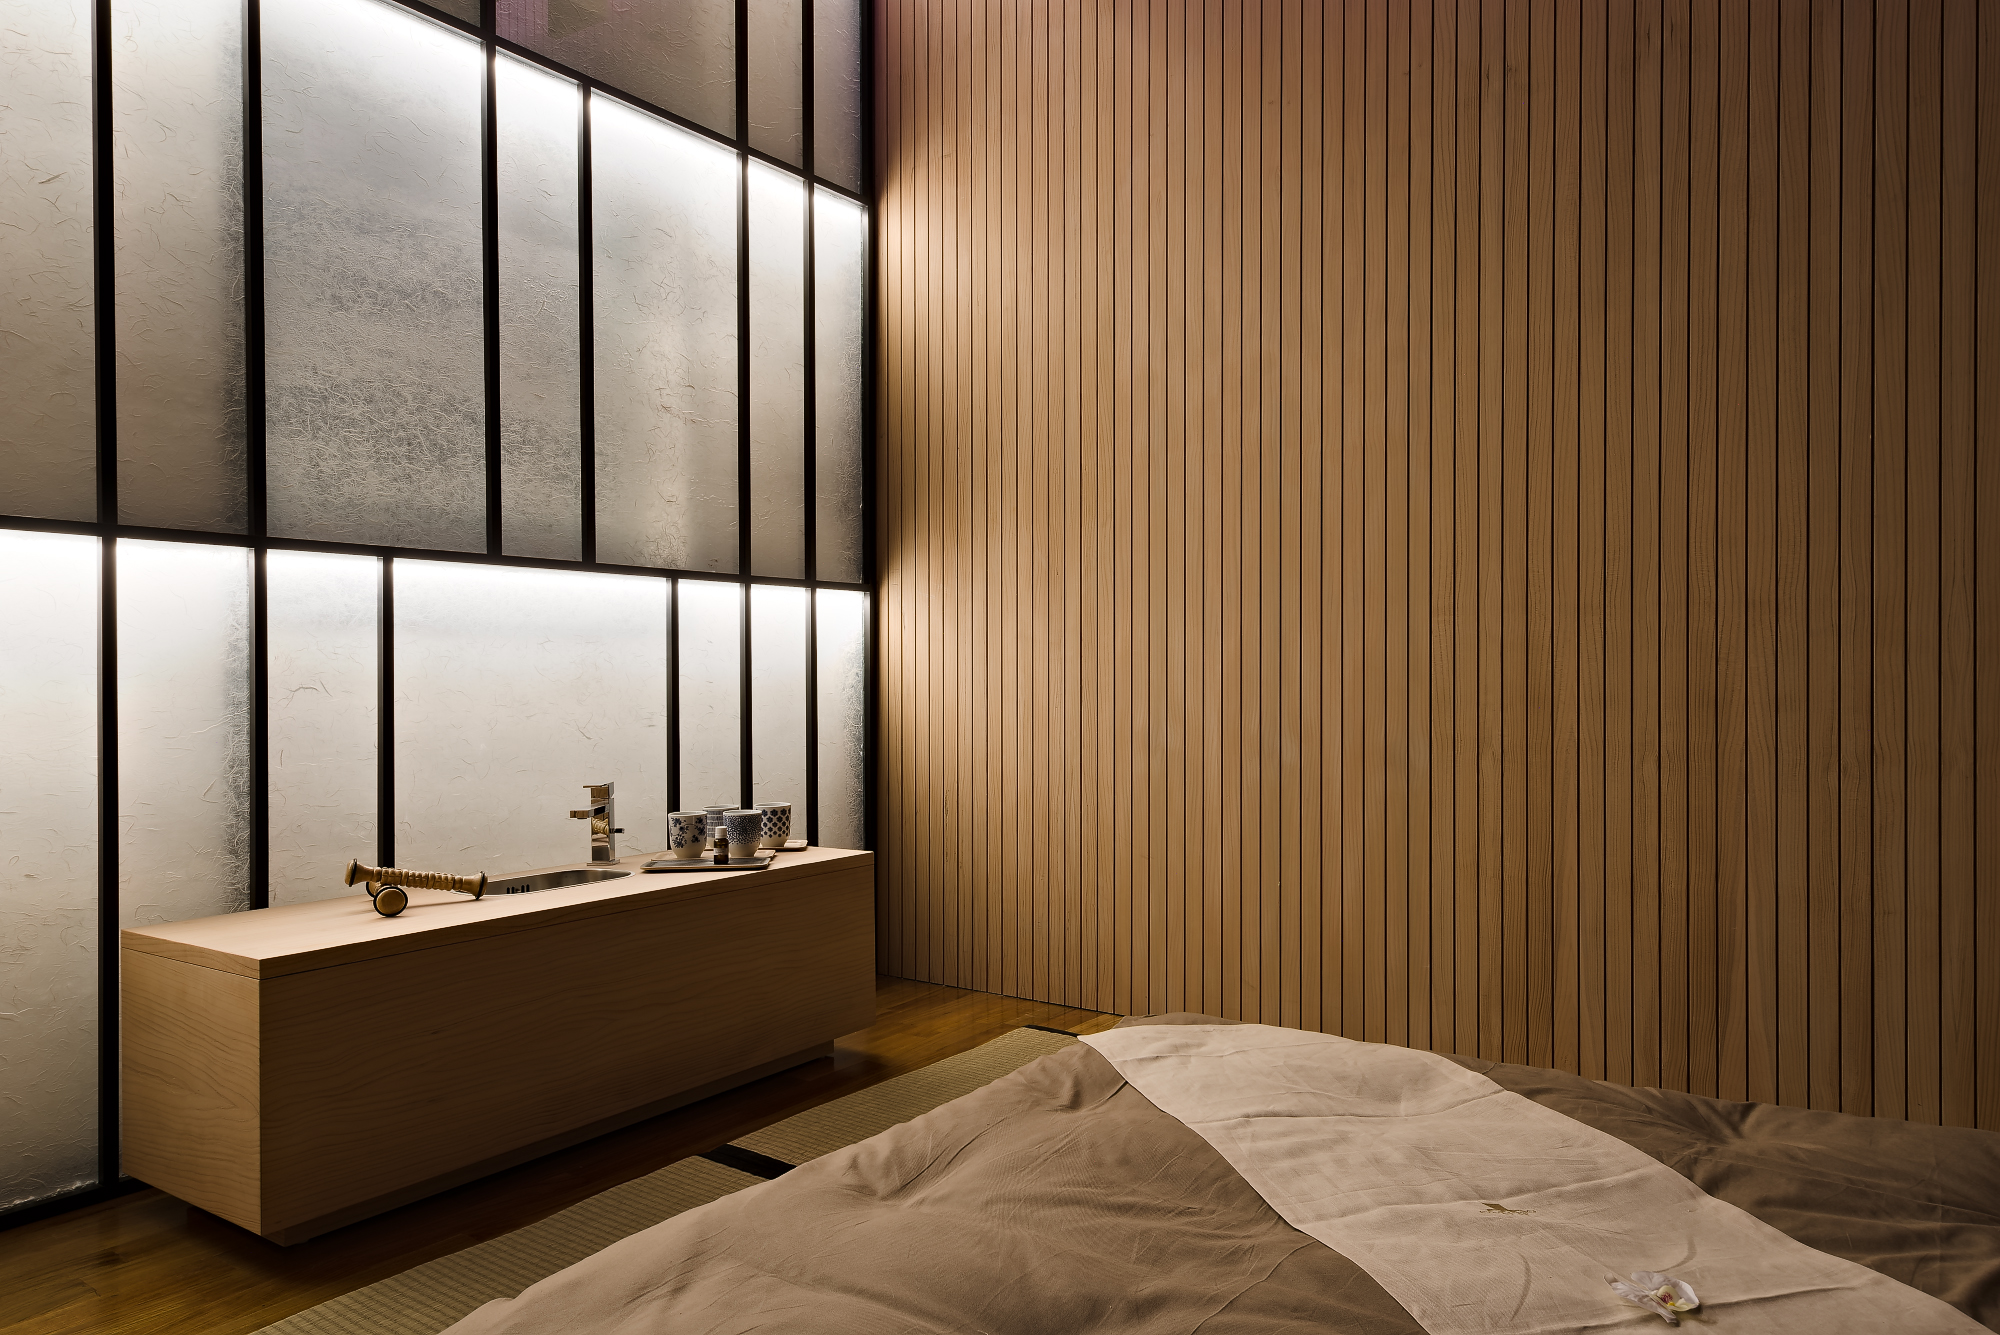 Longlife health spa Ayurveda room with the cedar wood walls and backlit rice paper panel. Washbasin unit in cedar wood with tatami on the floor